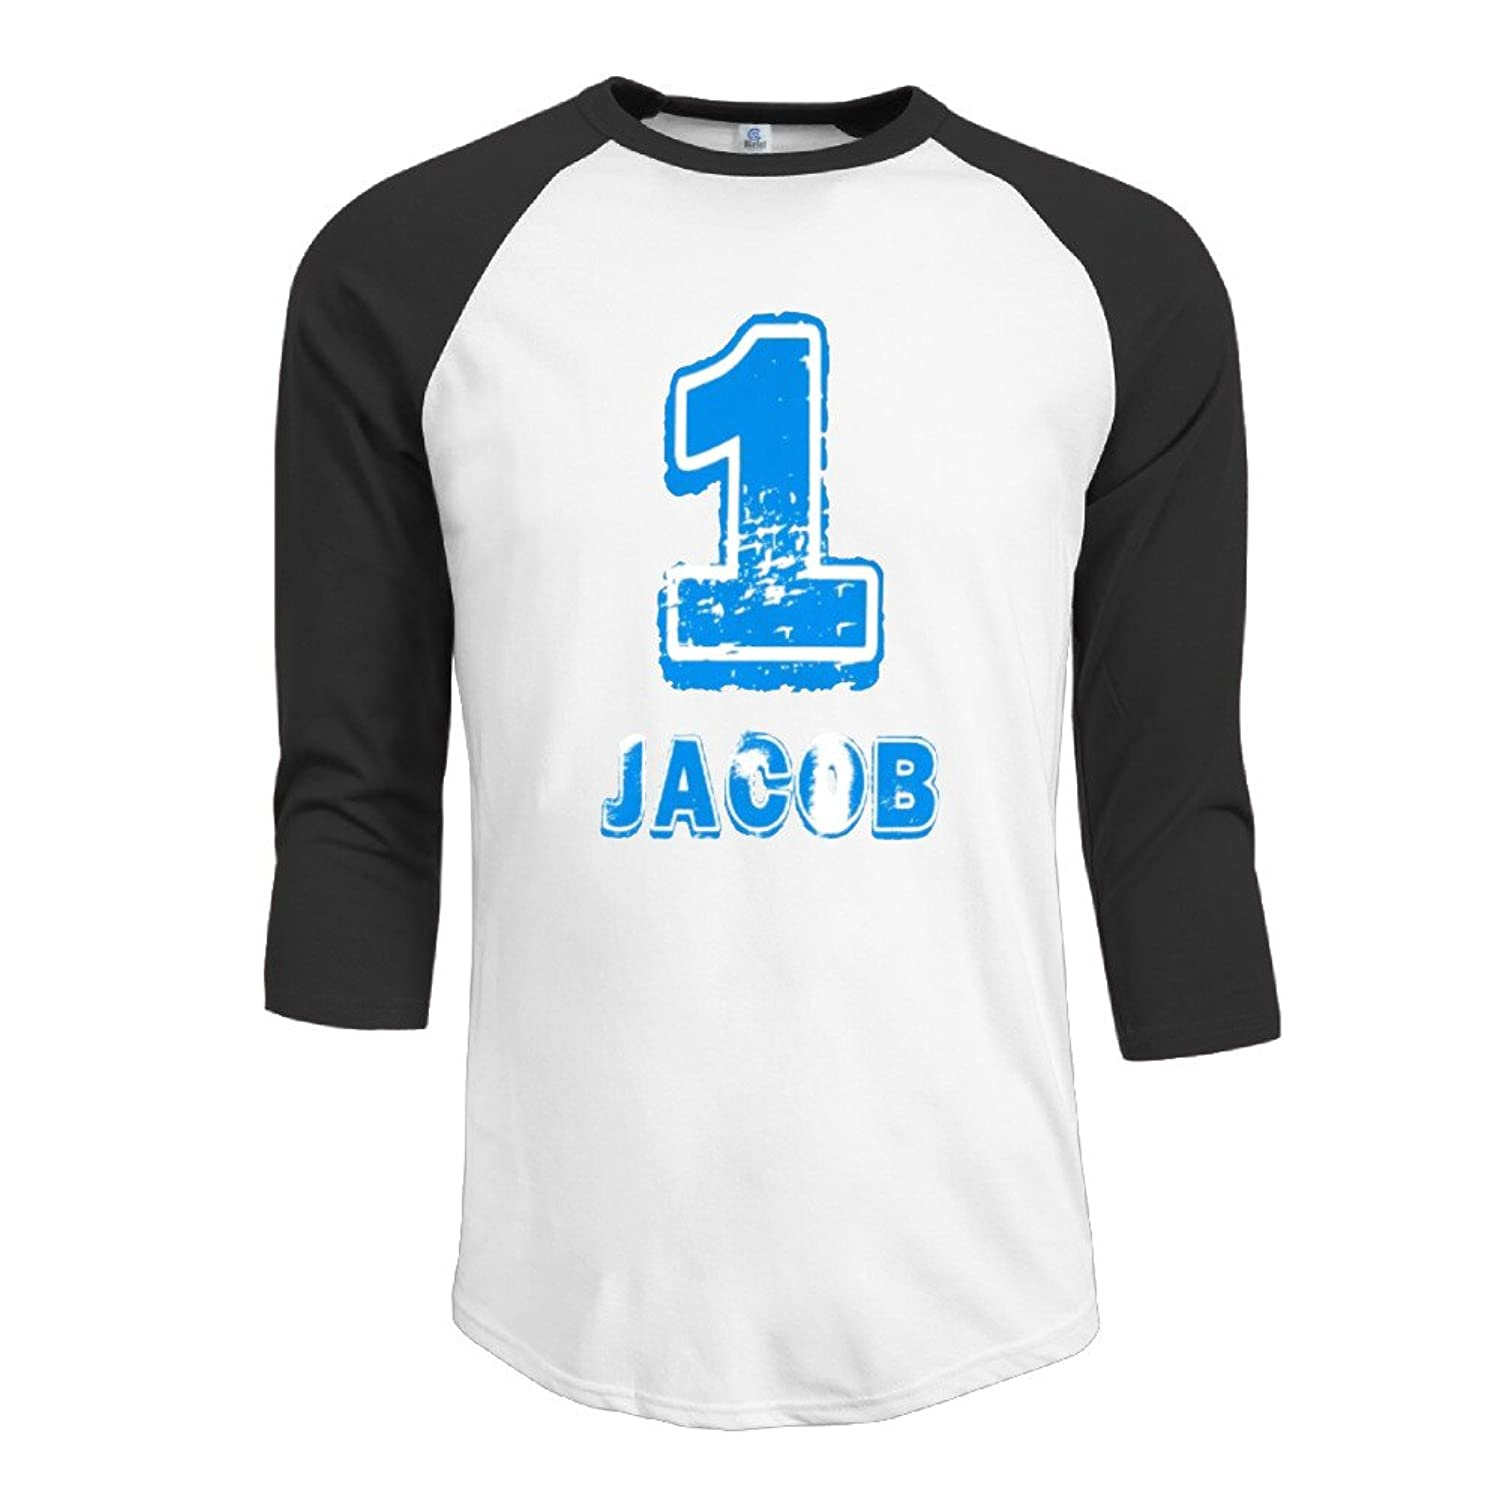 Printed Sportshirt Mens 1st Birthday For One Year Old Top 3/4 Sleeve Raglan Tops Shirt